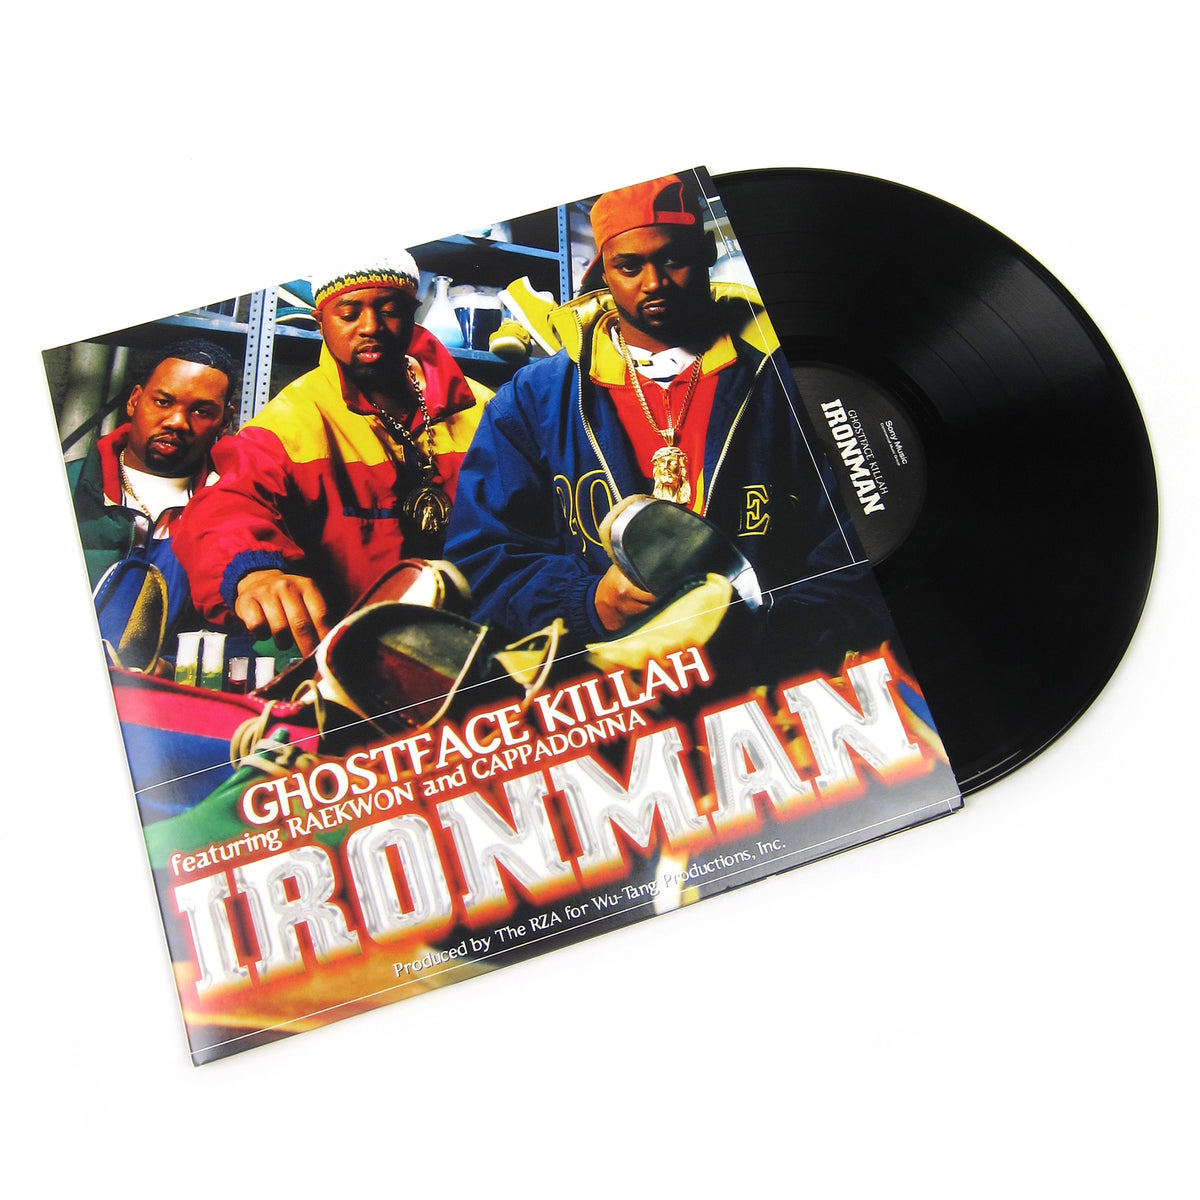 Ghostface Killah: Ironman Vinyl 2LP